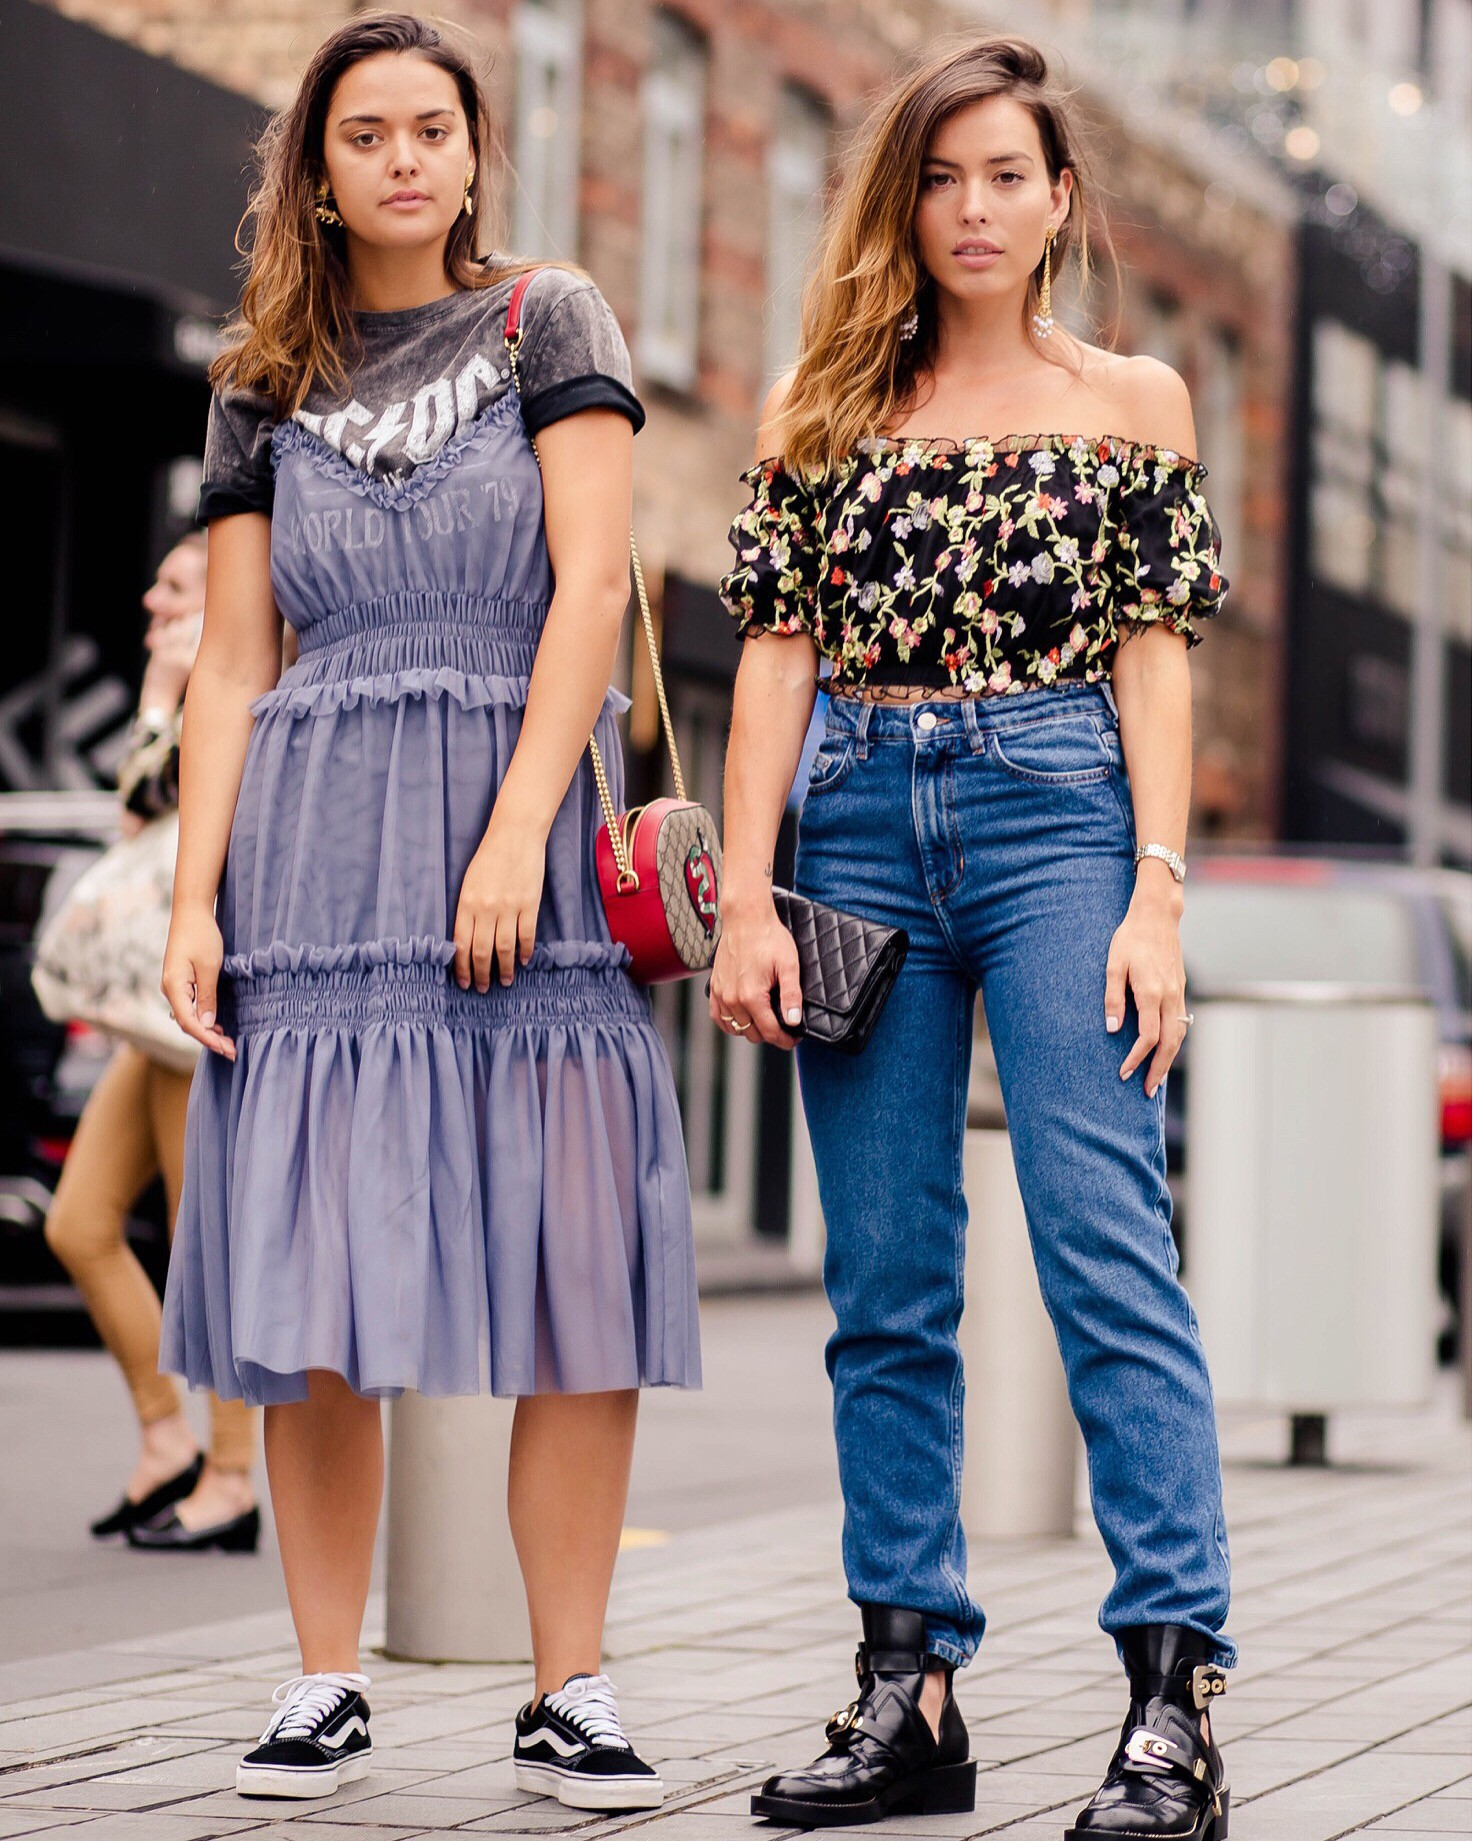 10 New Zealand Fashion Bloggers You Need to Follow